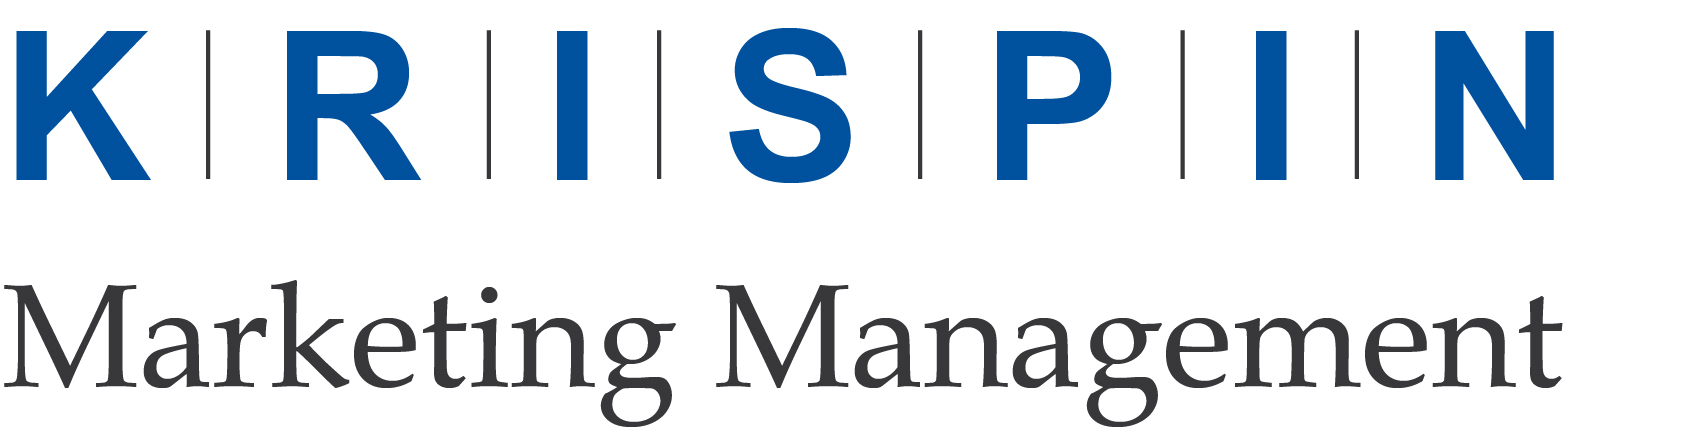 KRISPIN Marketing Management